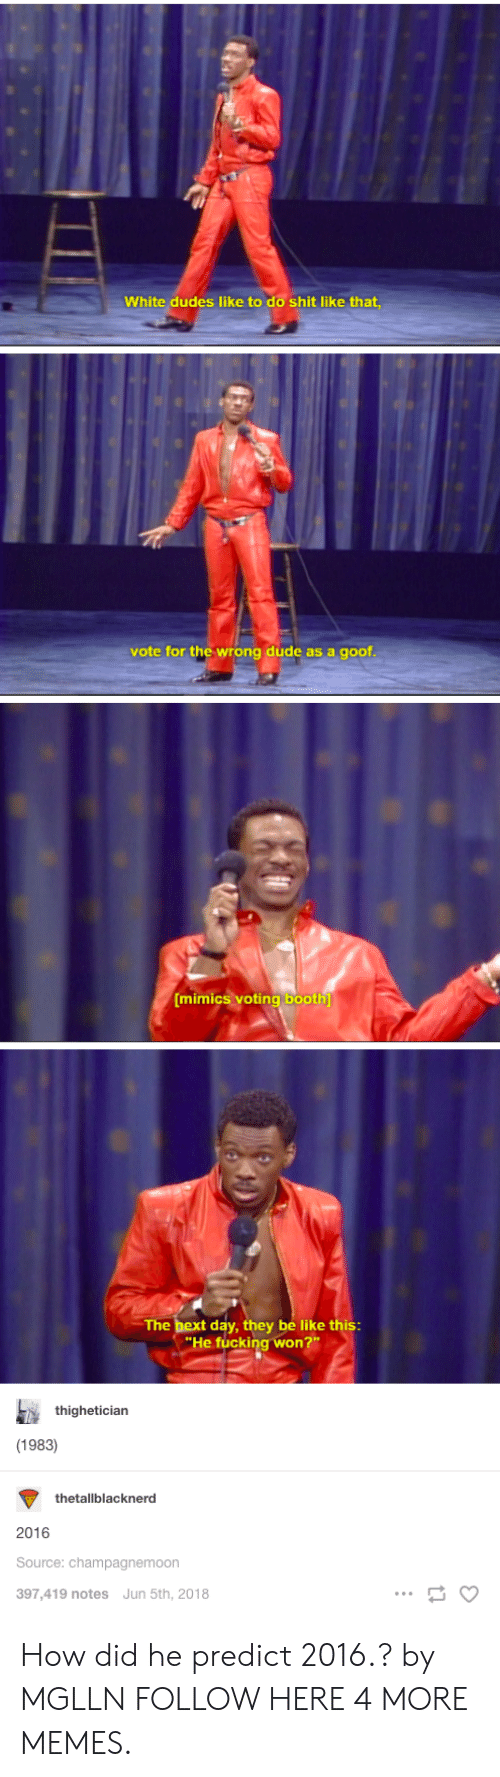 goof: White dudes like to do shit like that  vote for the wrong dude as a goof  mimiCS vOtinglbooth  The bex  t day, they be like this  He fucking won  thighetician  (1983)  thetallblacknerd  2016  Source: champagnemoon  397,419 notes Jun 5th, 2018 How did he predict 2016.? by MGLLN FOLLOW HERE 4 MORE MEMES.